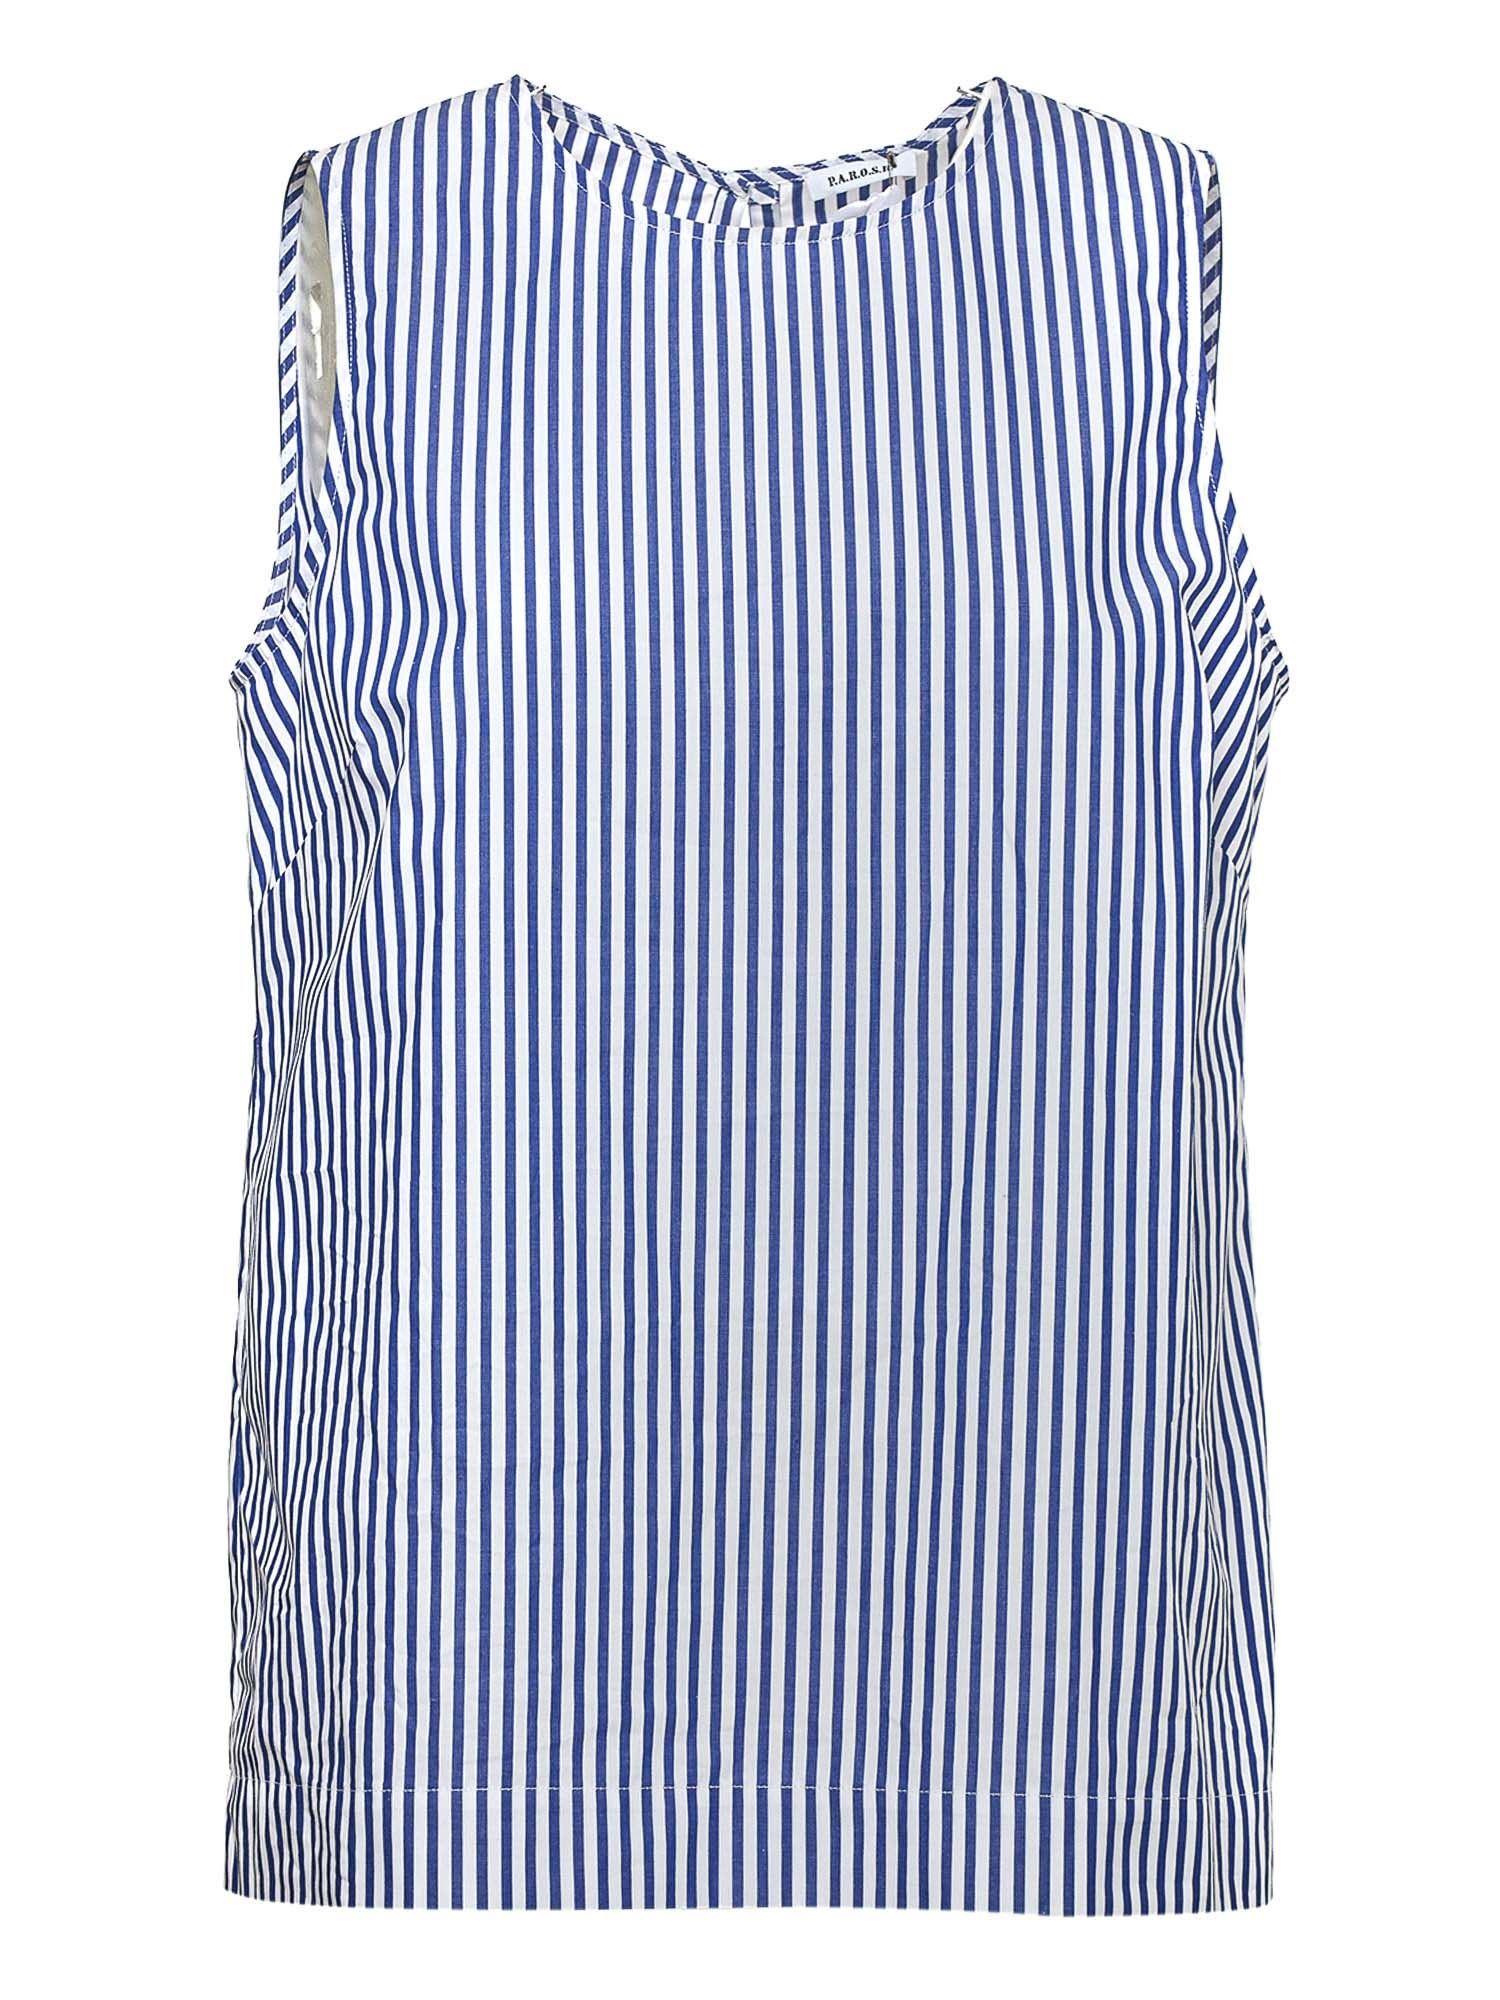 P.a.r.o.s.h. STRIPED COTTON TOP IN BLUE